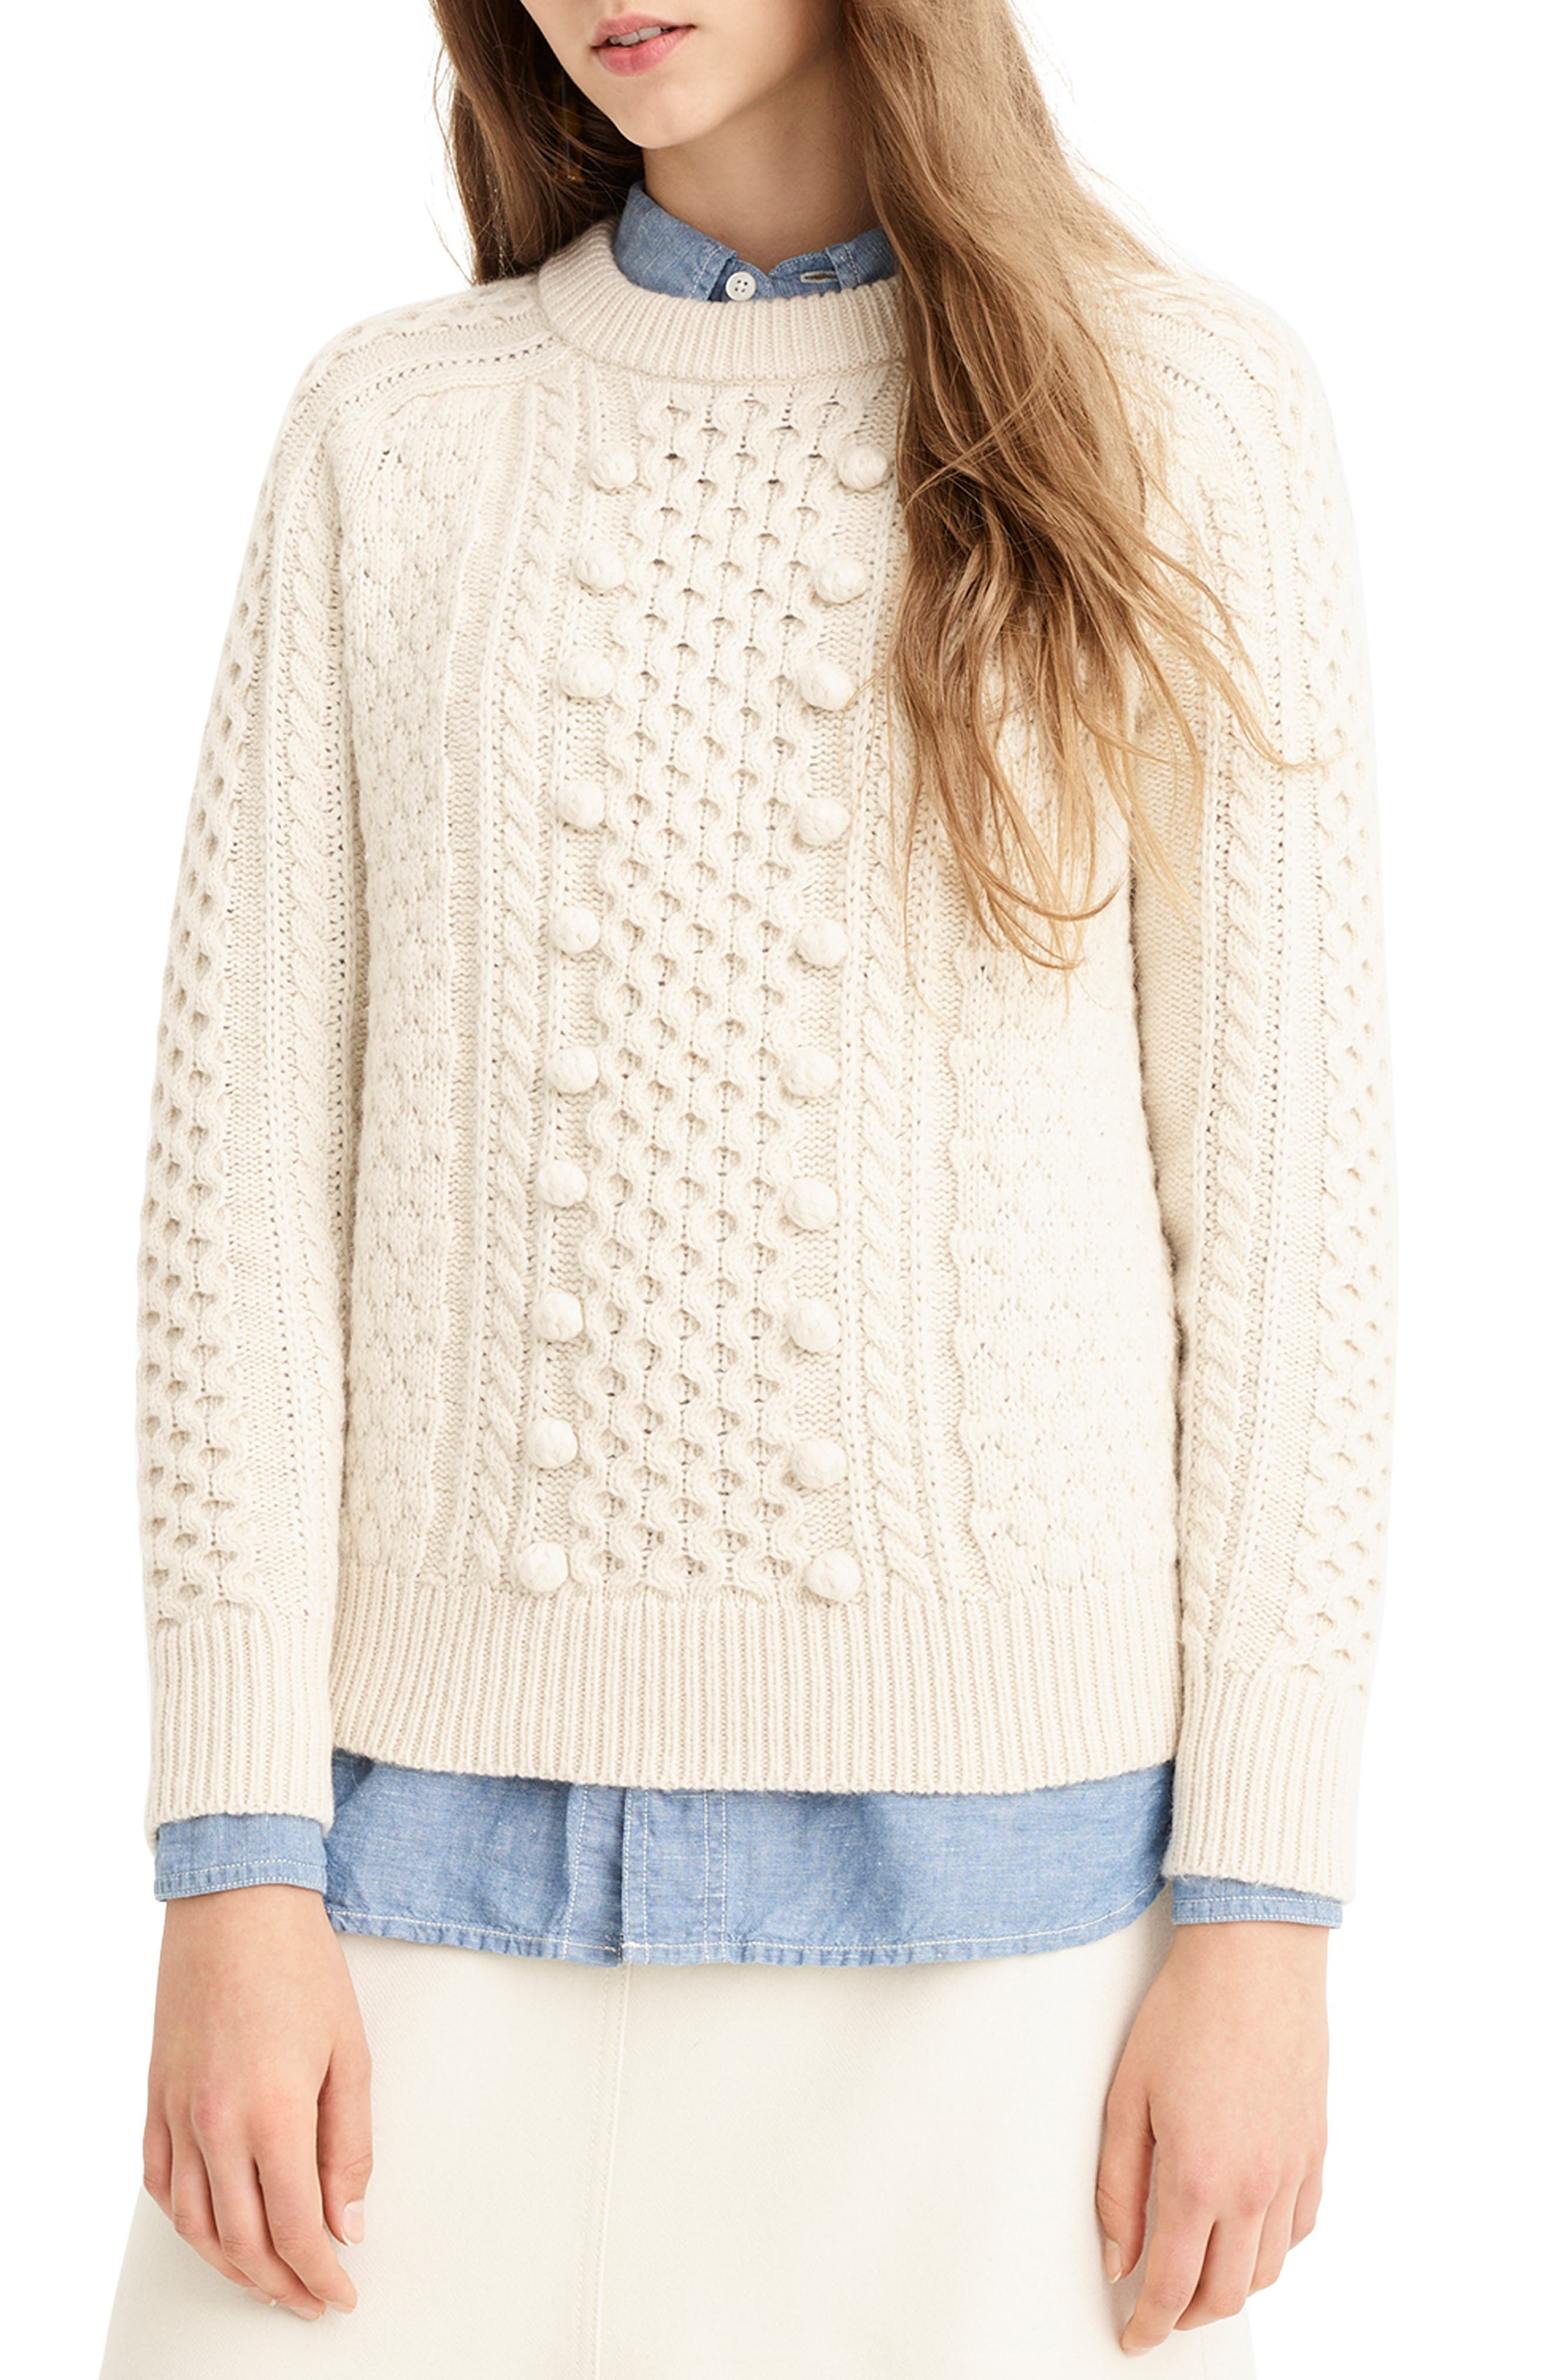 J.CREW Popcorn Cable Knit Sweater in Neutrals